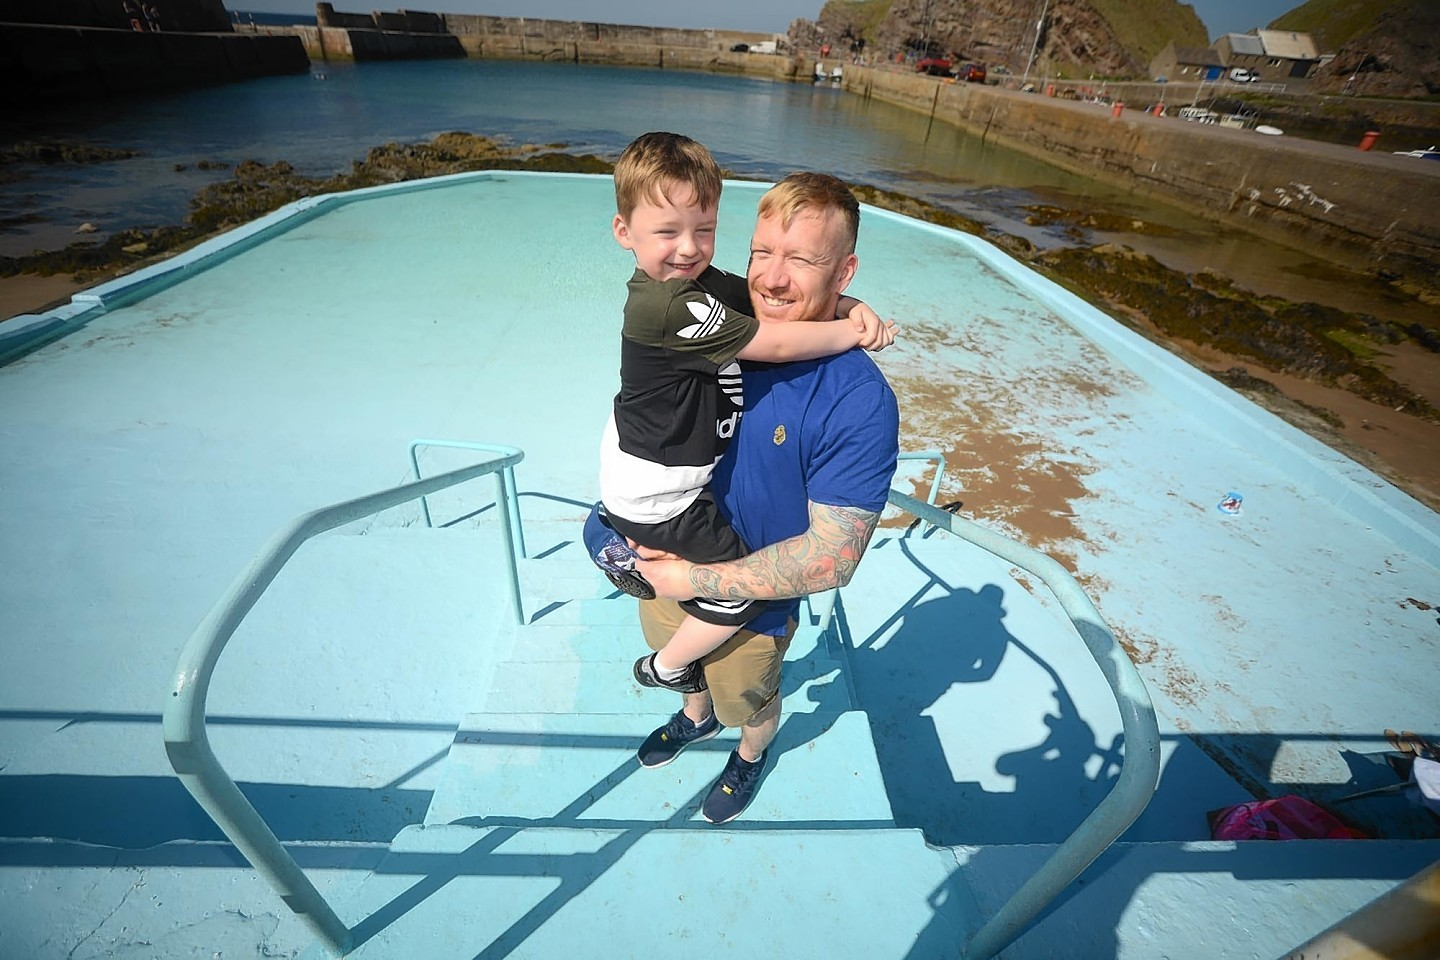 Steven Farquhar helps look after Portknockie at the paddling pool he has just finished doing it up for summer.  Also in the photo is his son Alex, 5